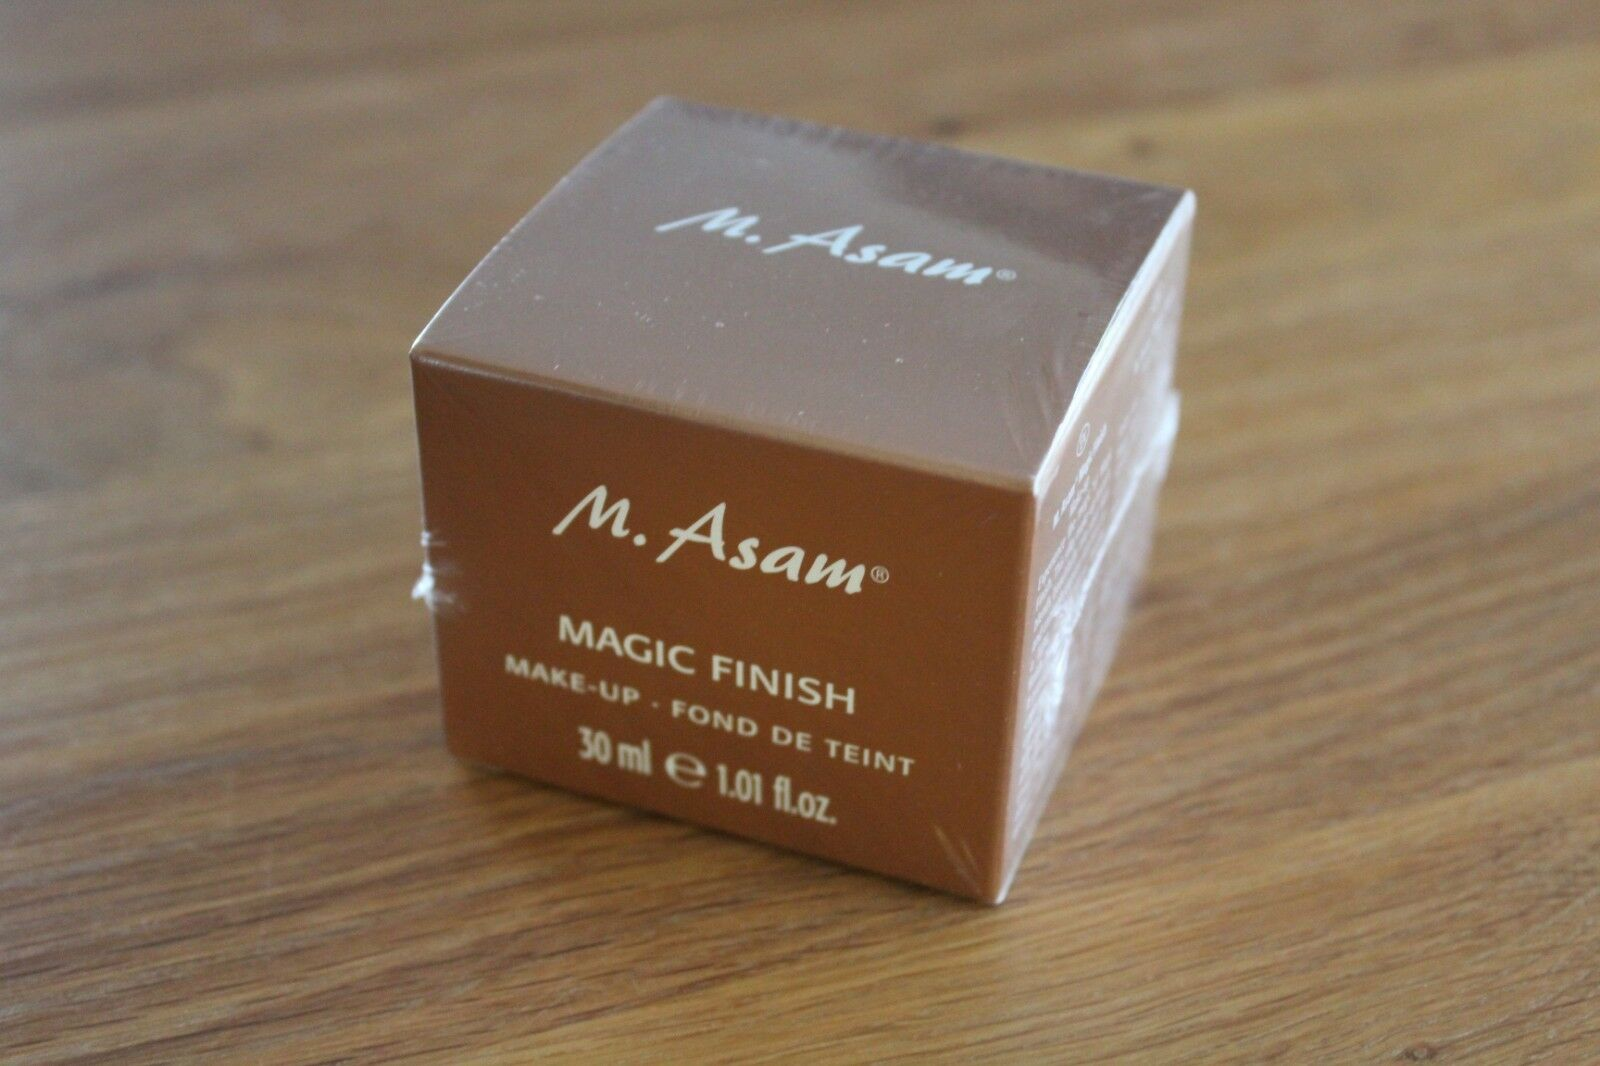 M.Asam , Magic Finish, MAKE-UP MOUSSE Faltenfüller, 30 ml , NEU & versiegelt